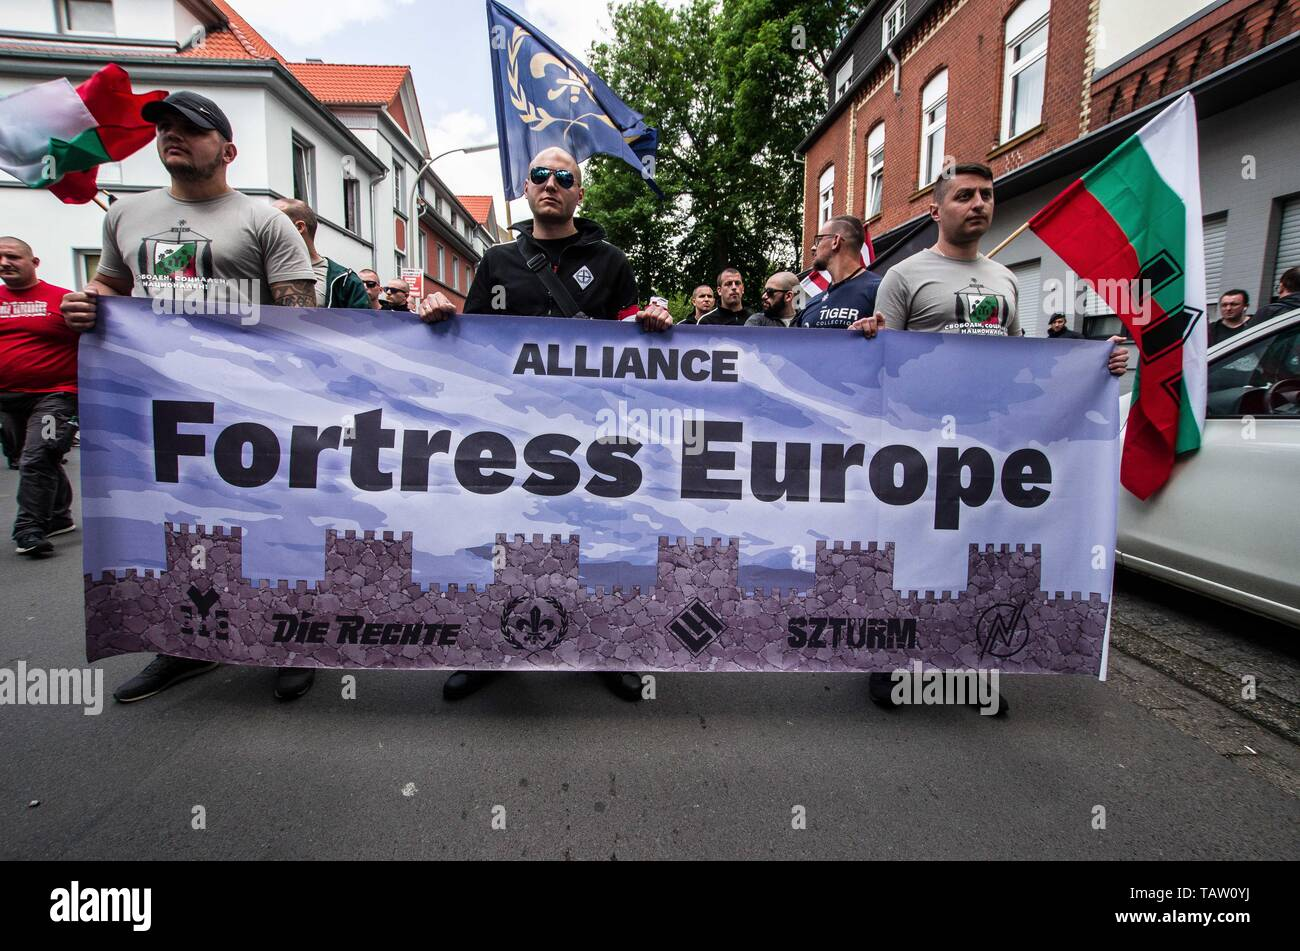 Dortmund, Nordrhein Westfalen, Germany. 25th May, 2019. The Alliance Fortress Europe banner being held by Bulgarian, French, German, and Hungarian neonazis in Dortmund, Germany. Prior to the European Elections, the neonazi party Die Rechte (The Right) organized a rally in the German city of Dortmund to promote their candidate, the incarcerated Holocaust denier Ursula Haverbeck. The demonstration and march were organized by prominent local political figure and neonazi activist Michael Brueck (Michael Brück) who enlisted the help of not only German neonazis, but also assistance from Russian, Stock Photo